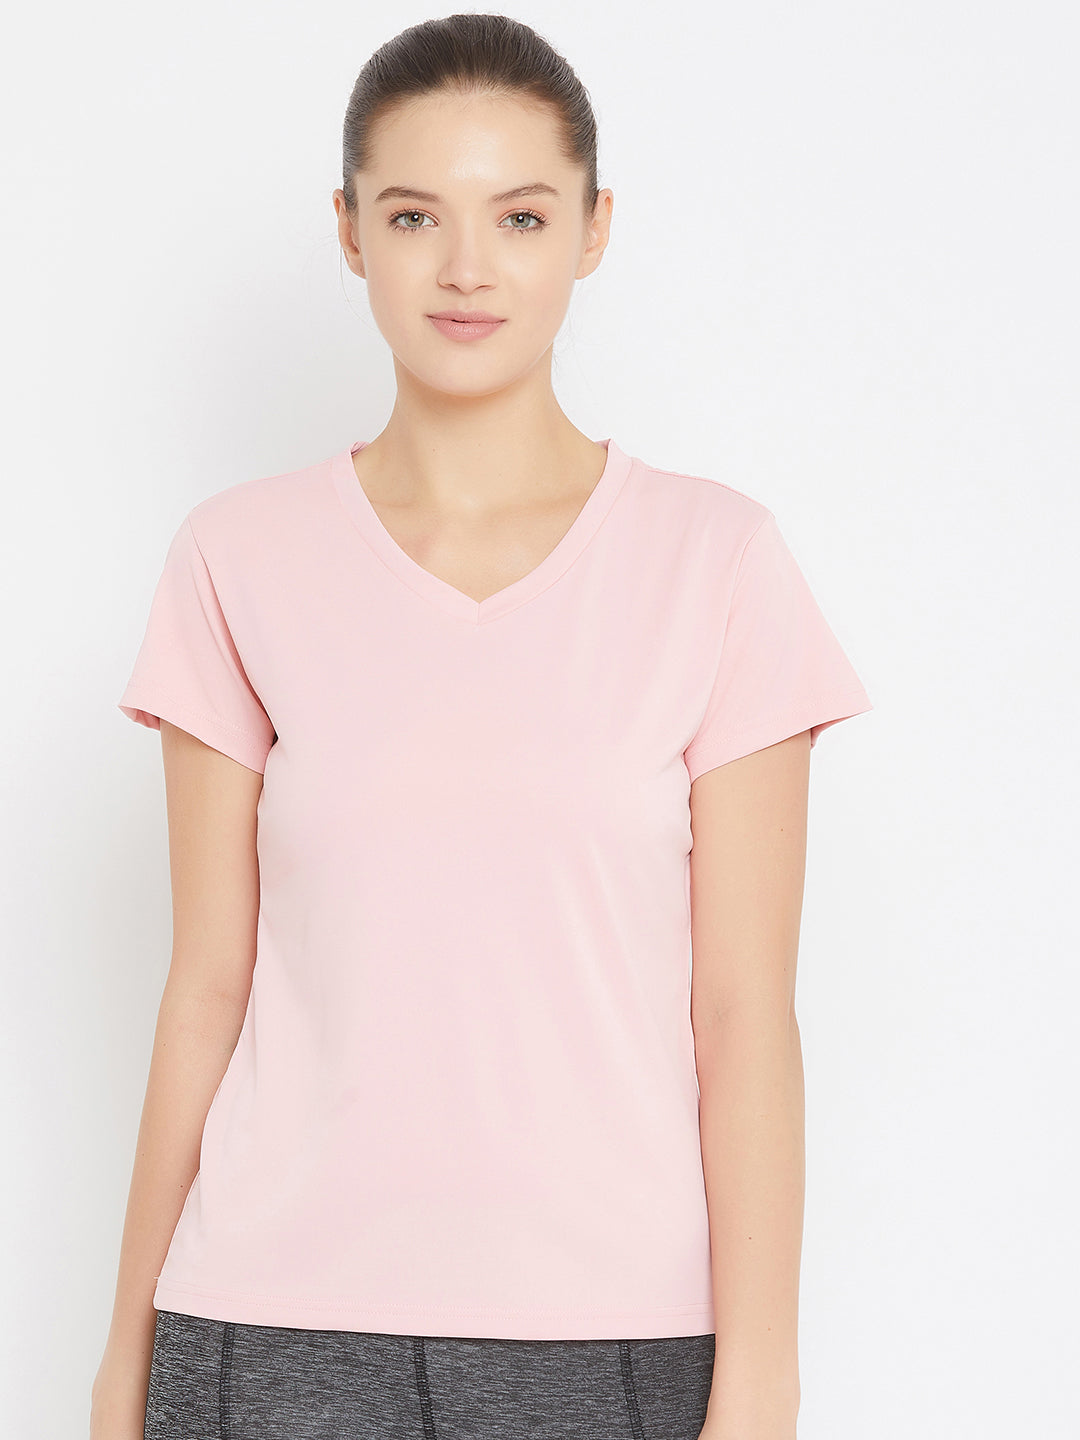 JUMP USA Women Pink Active Wear V- Neck T-shirt